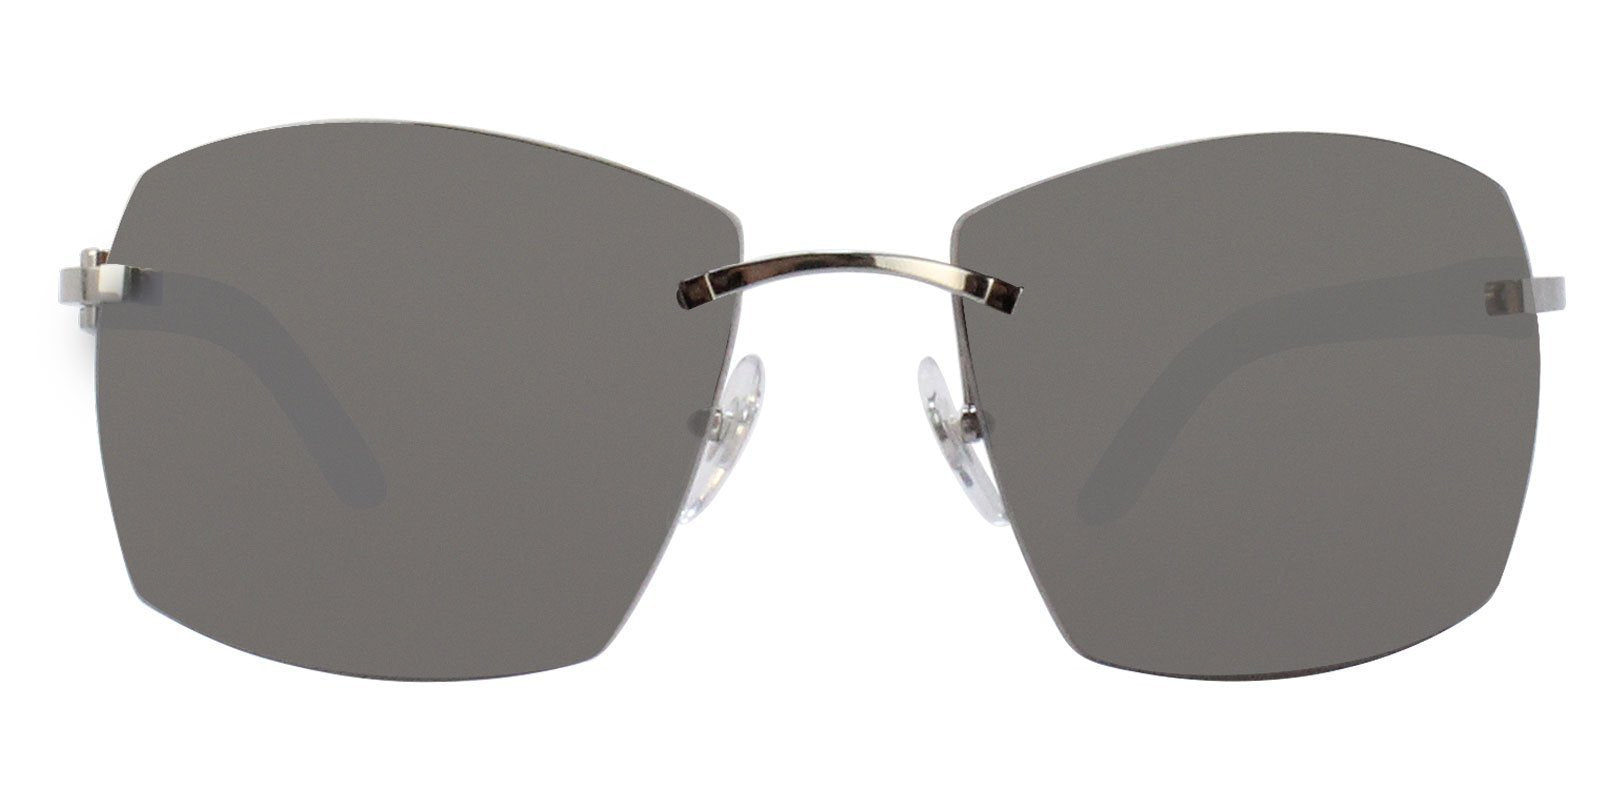 Cartier - C Decor Gray Rimless Men Sunglasses - 60mm-Sunglasses-Designer Eyes